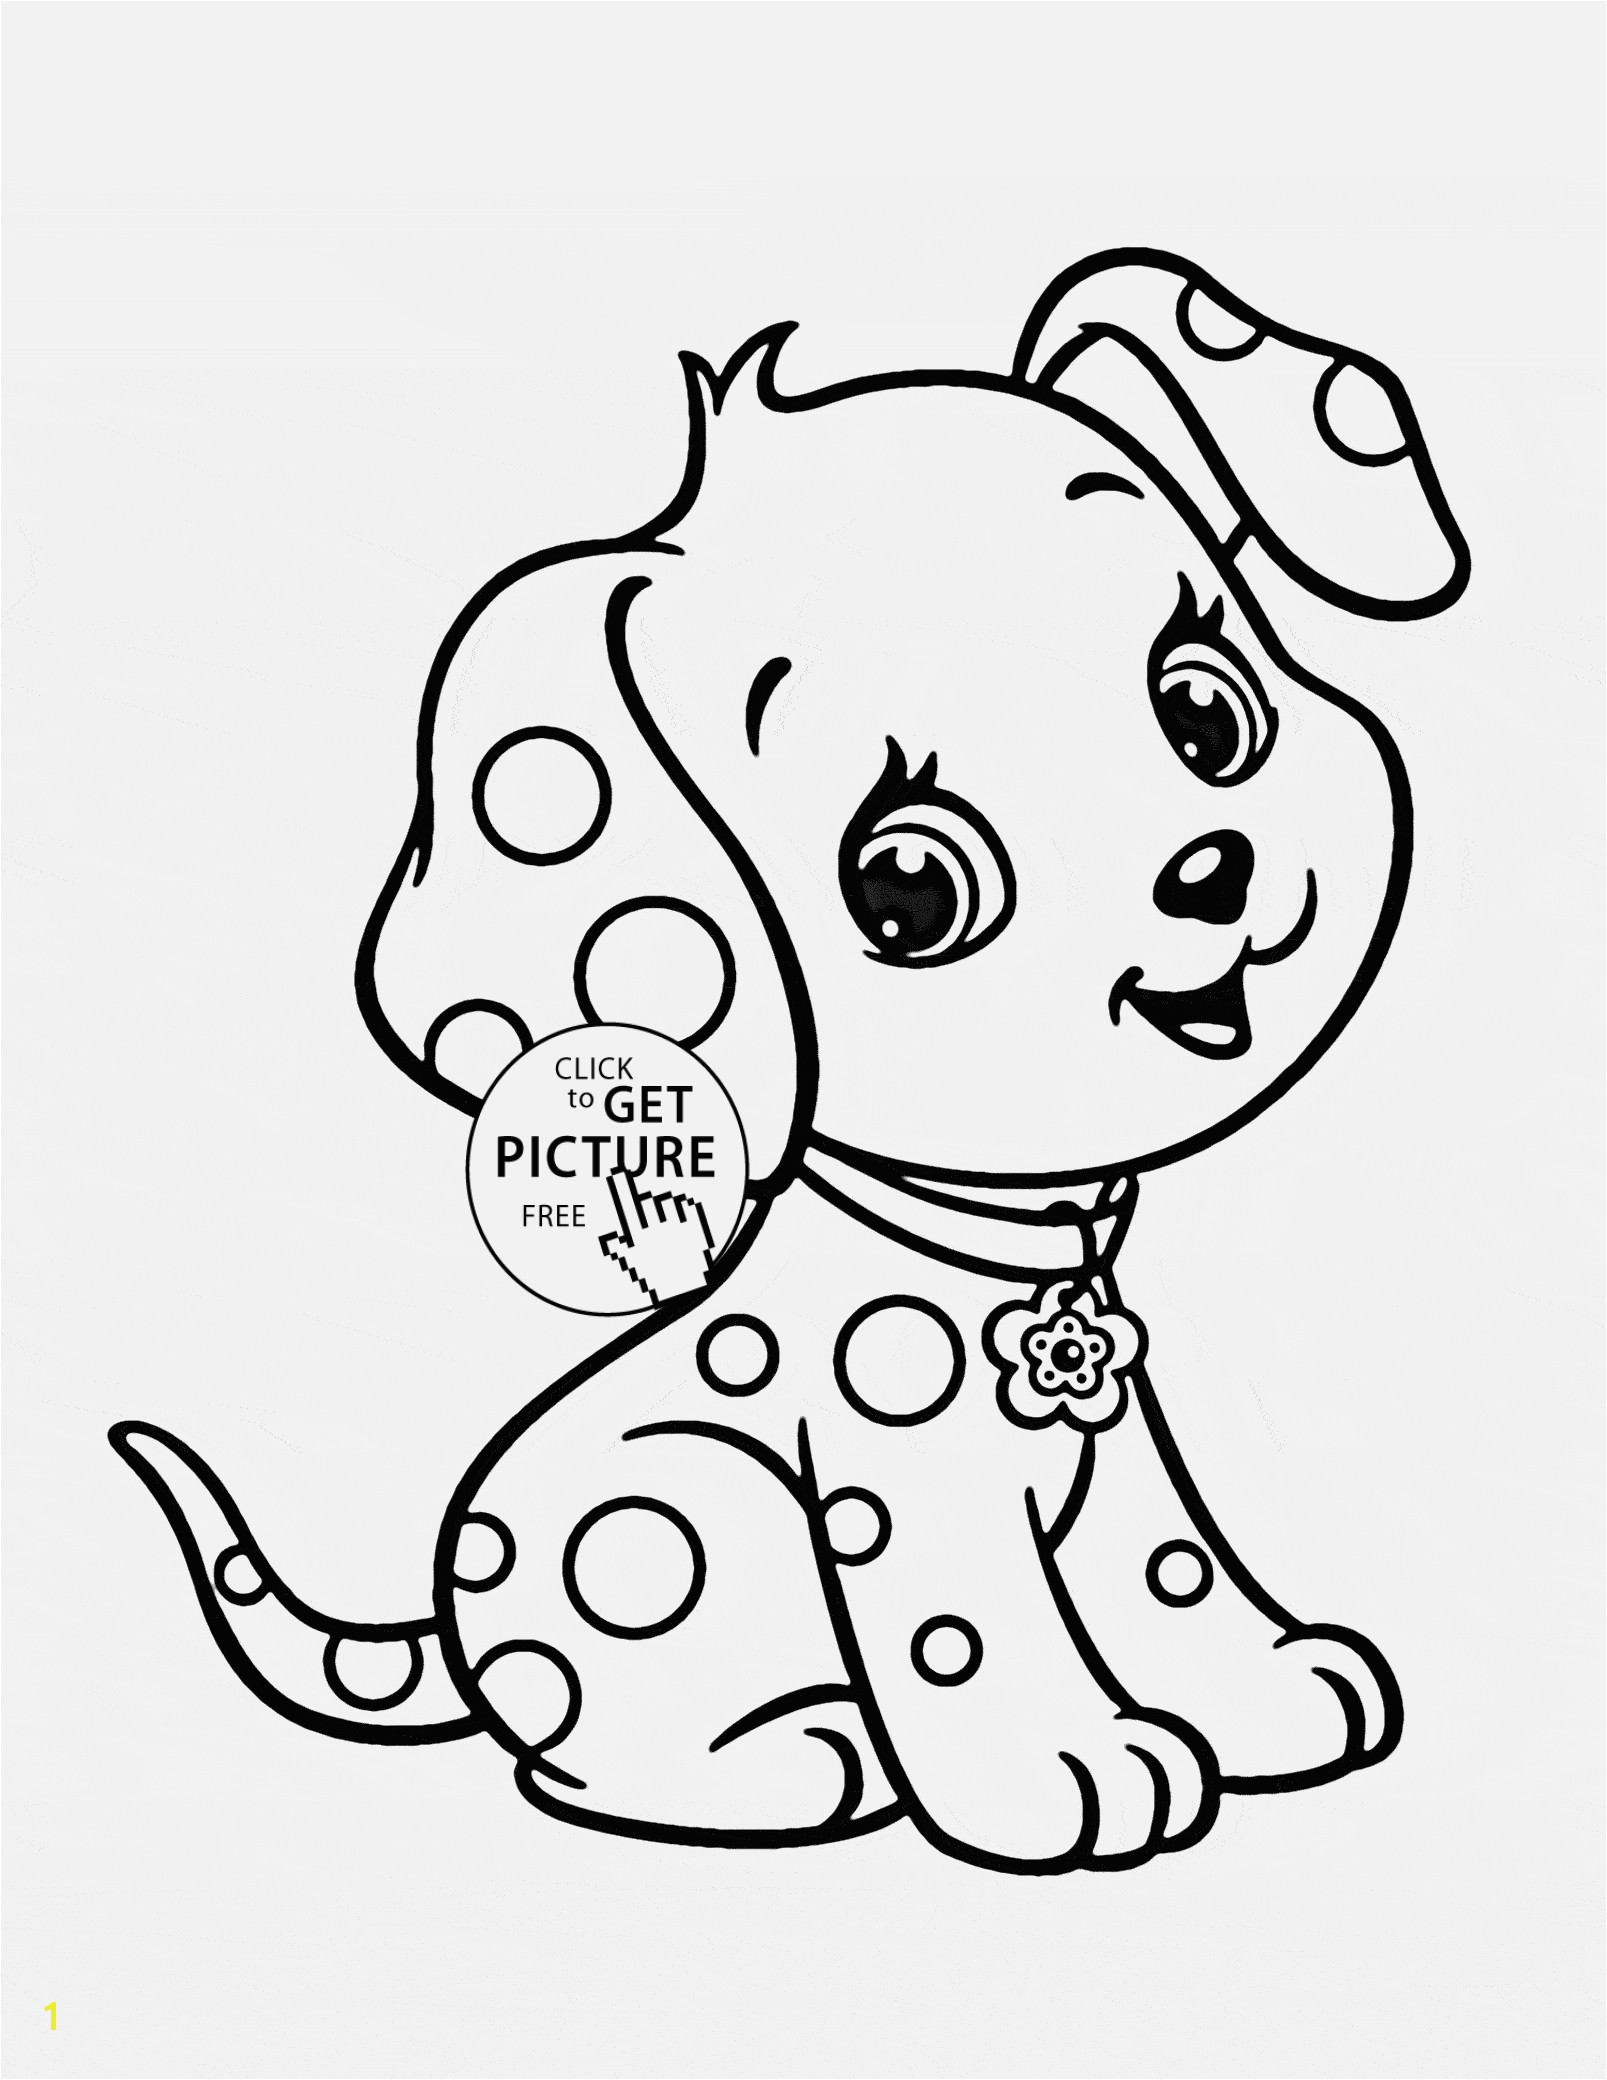 Coloring Book Pages Free Animal Coloring Pages Free Print Cool Coloring Page Unique Witch Coloring